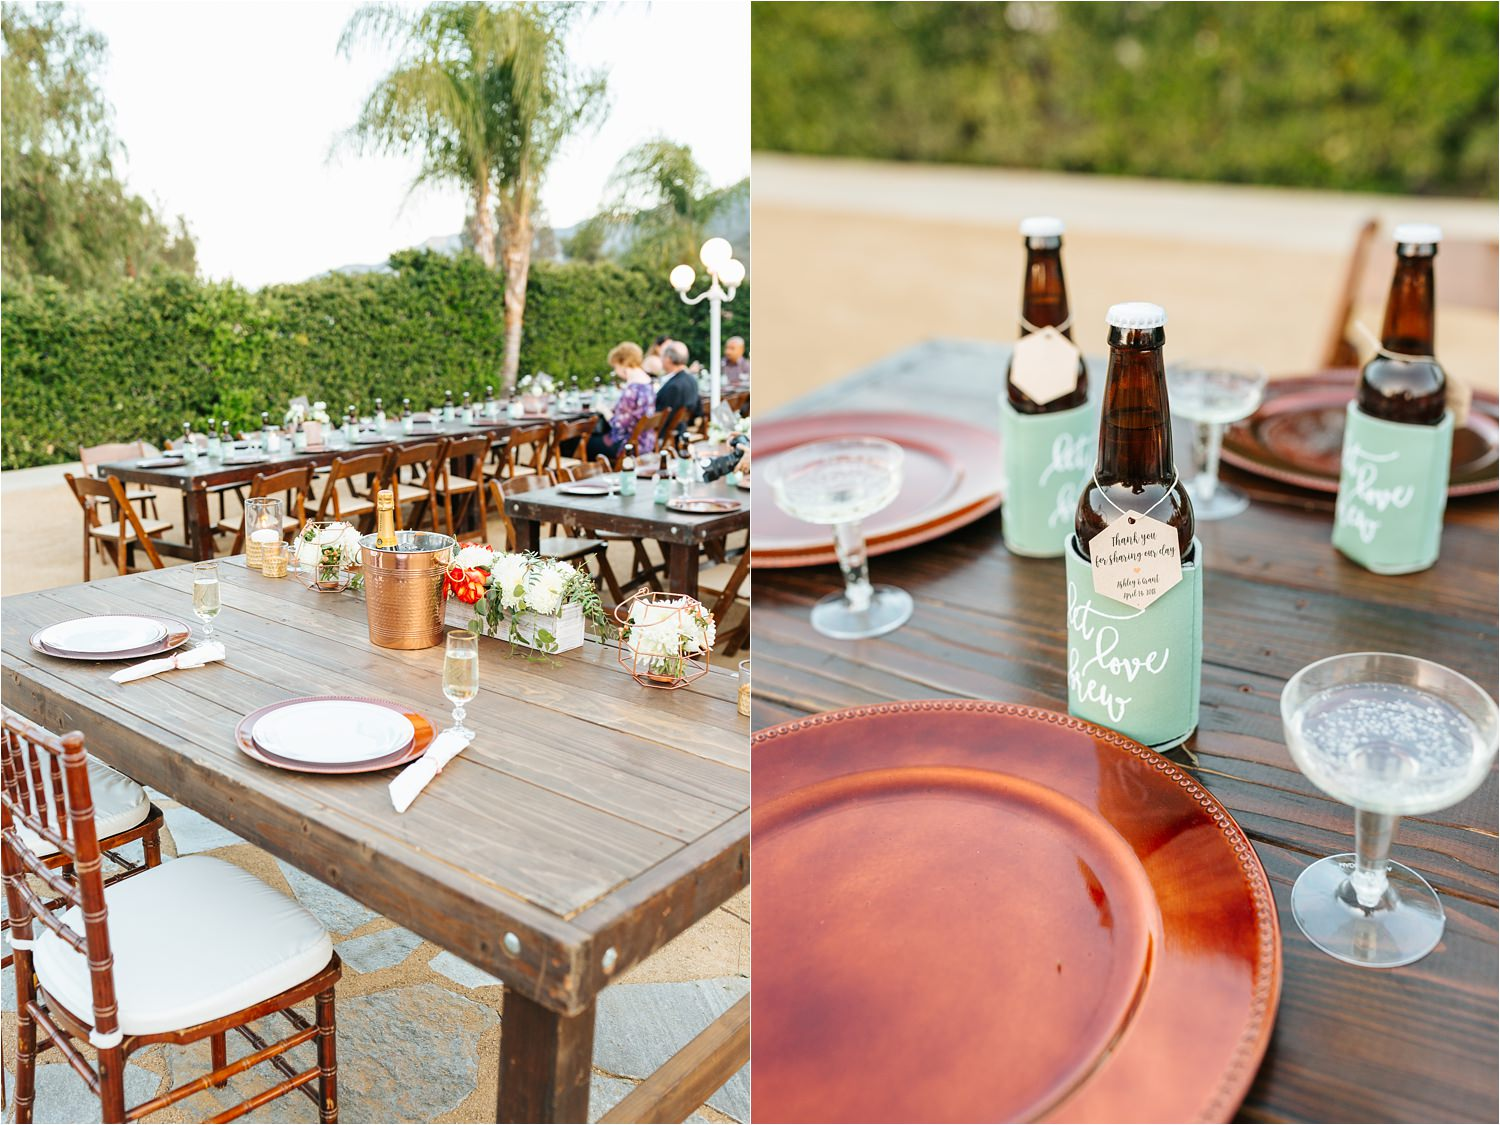 Dreamy Backyard Wedding Reception Details - https://brittneyhannonphotography.com